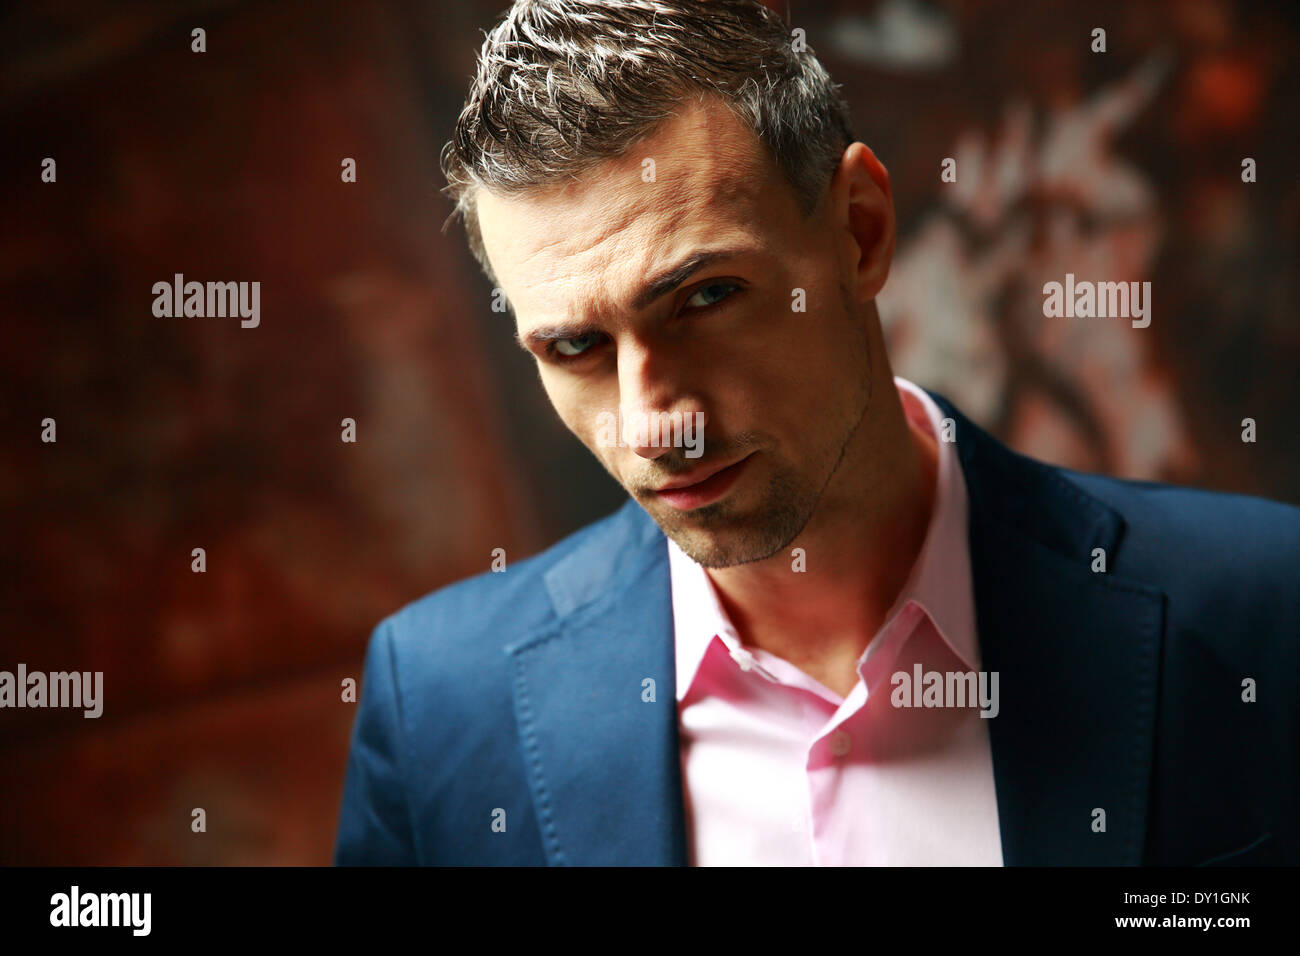 Portrait of a confident businessman - Stock Image